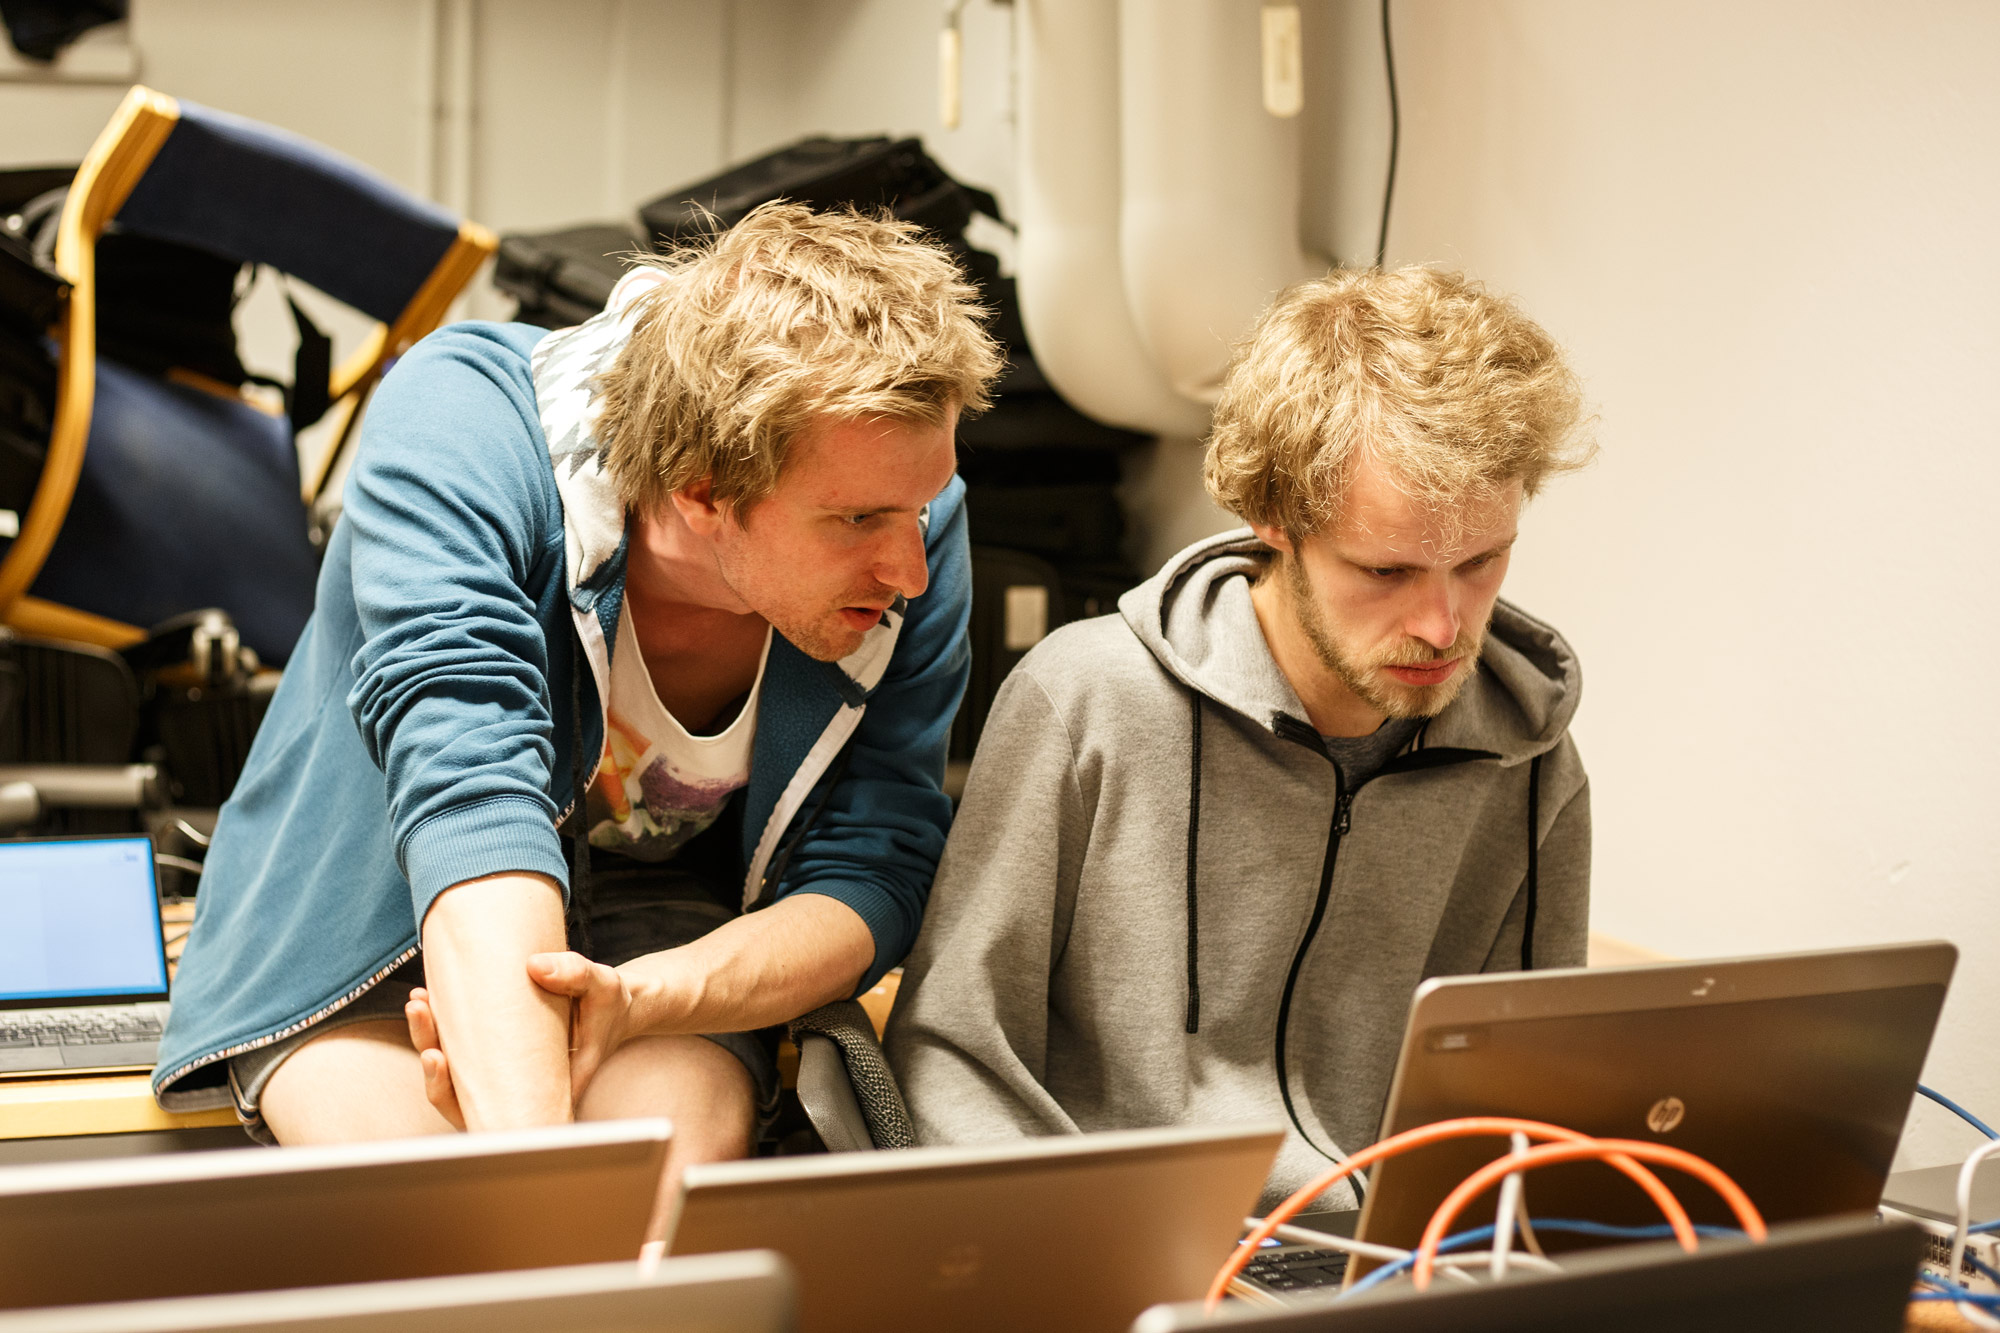 Oskar (left) and Joel (right) helping us setting up the installation of Wikipedia.